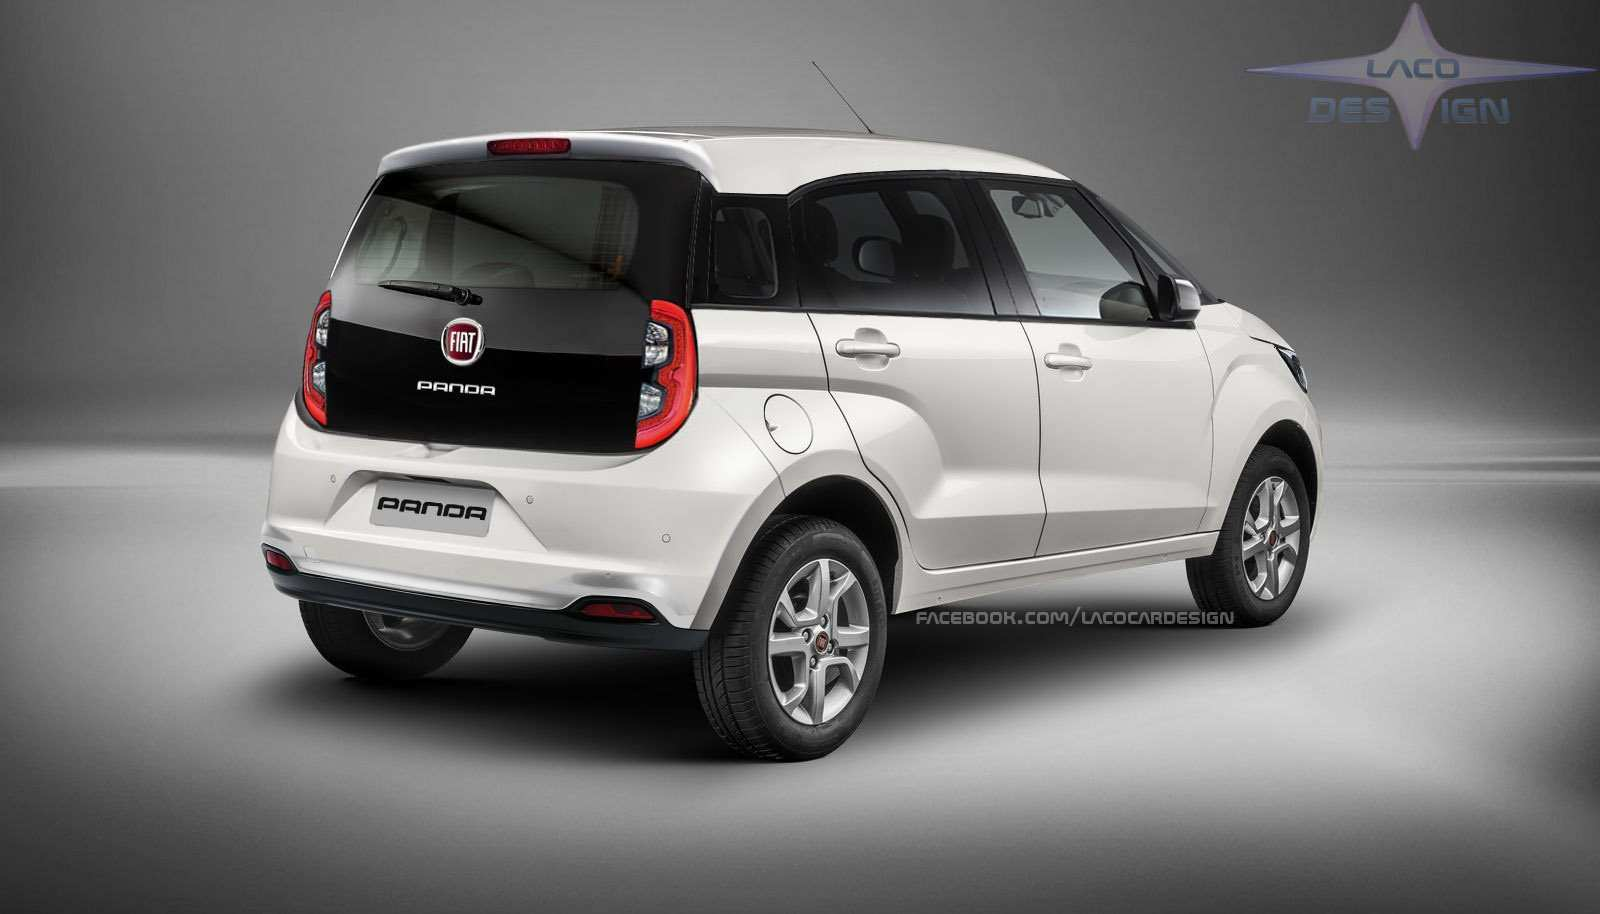 17 New 2020 Fiat 500L Images with 2020 Fiat 500L